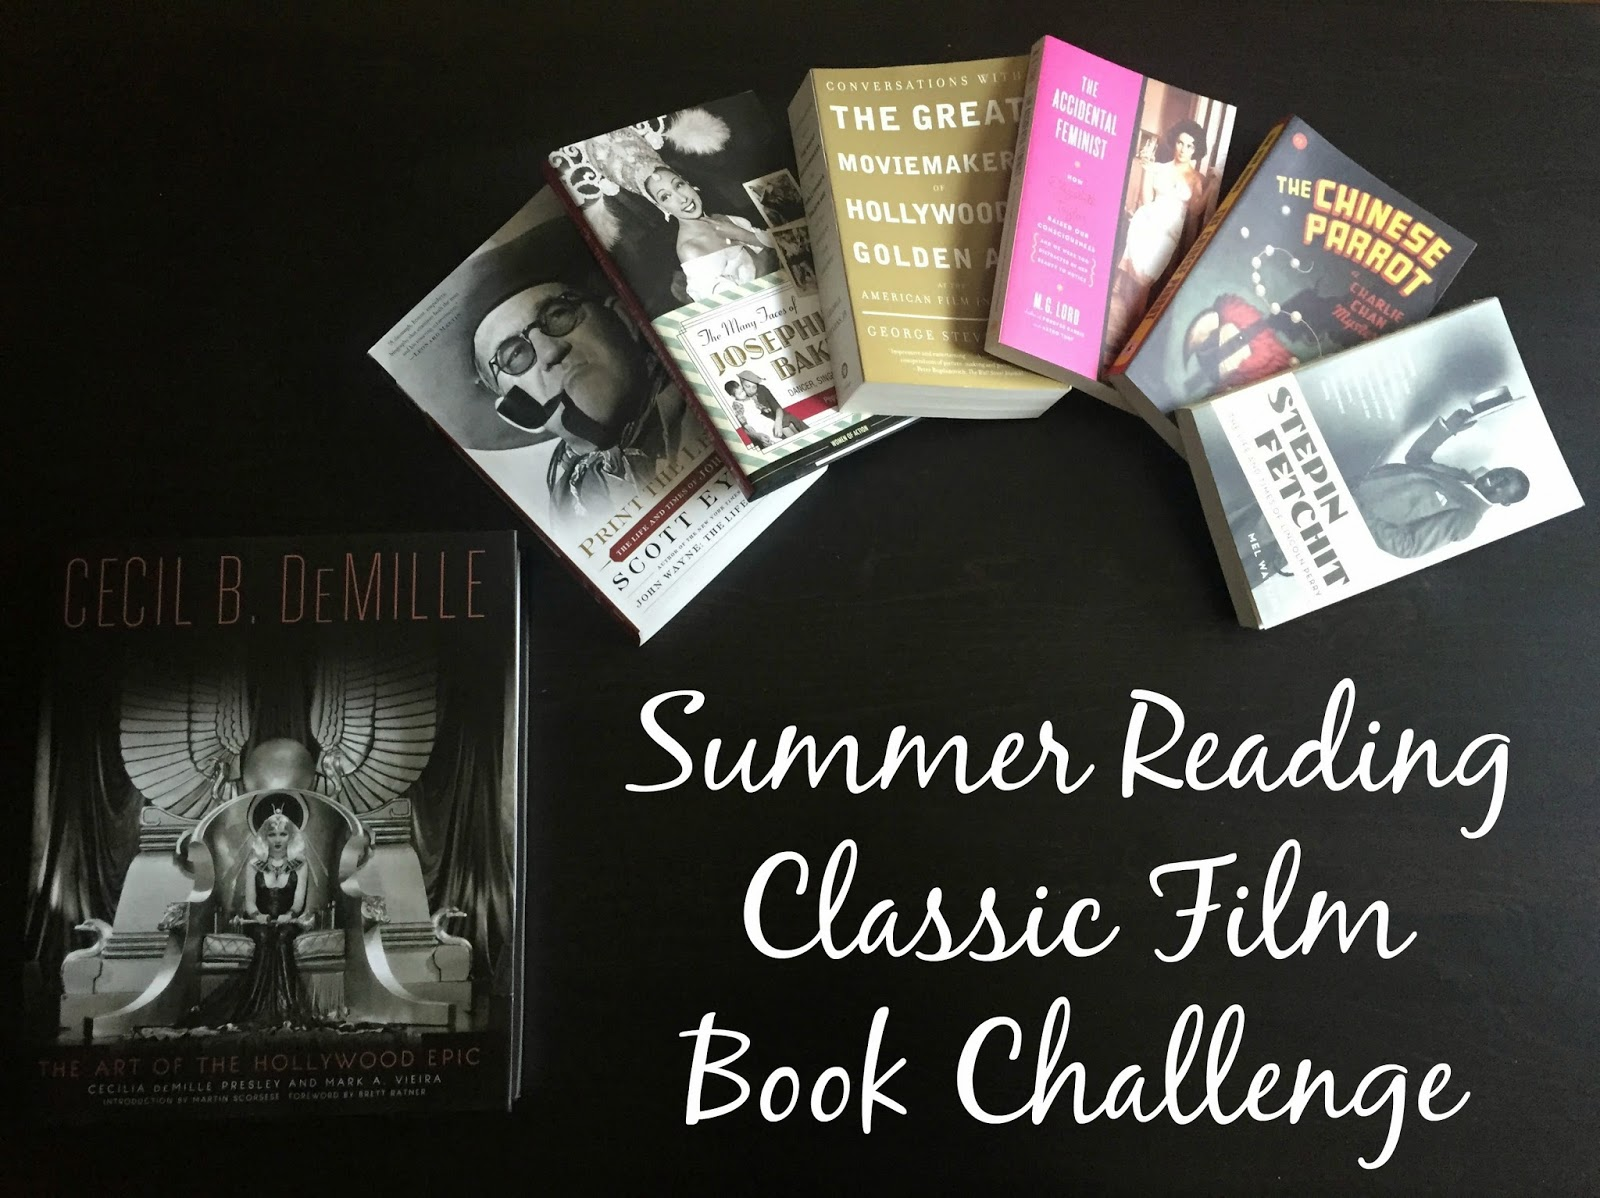 2015 Summer Reading Classic Film Book Challenge